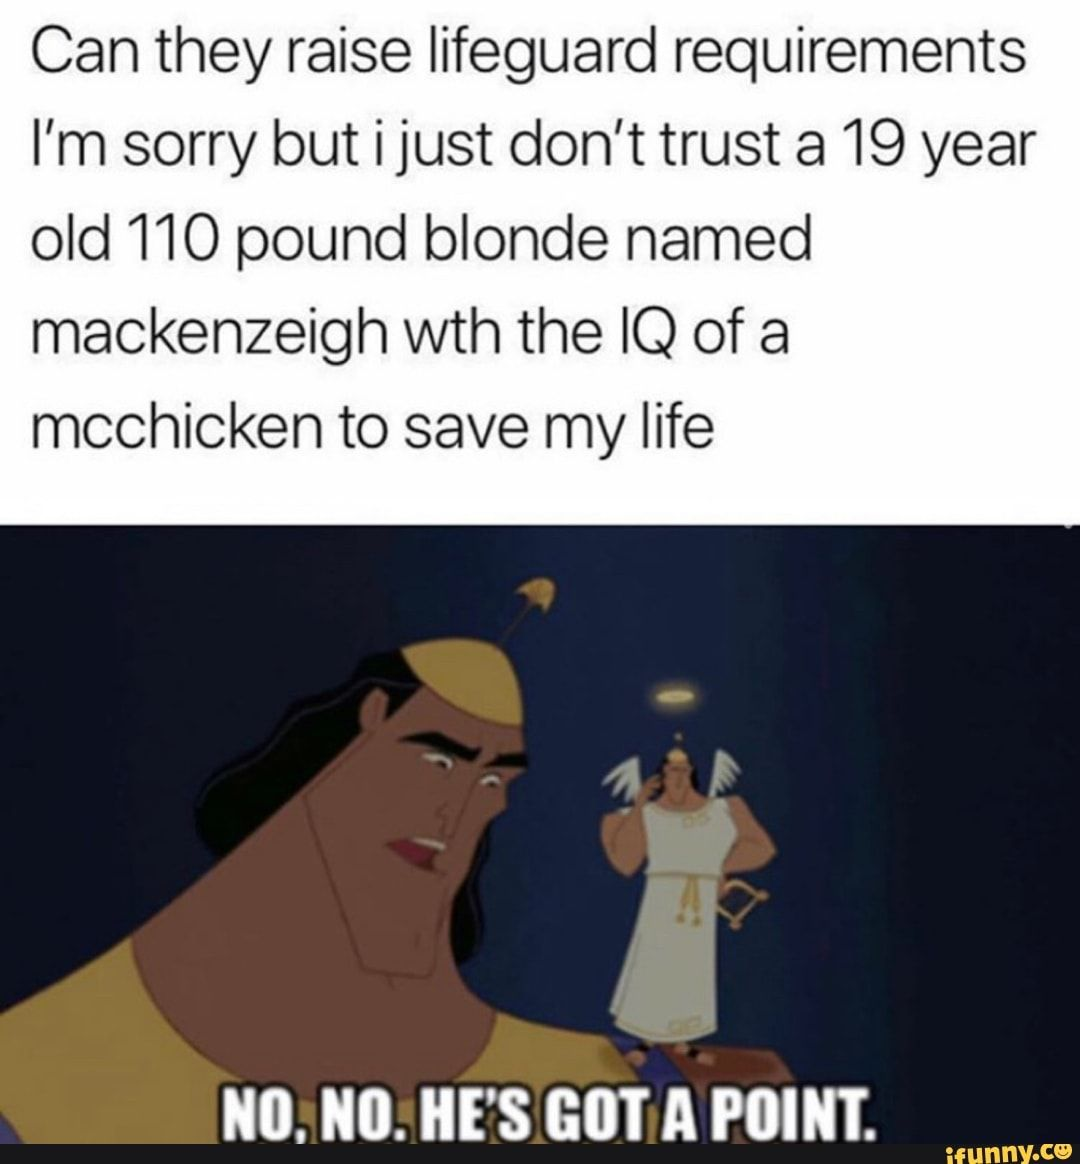 Can they raise lifeguard requirements I'm sorry but i just don't trust a 19 year old 110 pound blonde named mackenzeigh wth the IQ of a mcchicken to save my life - )